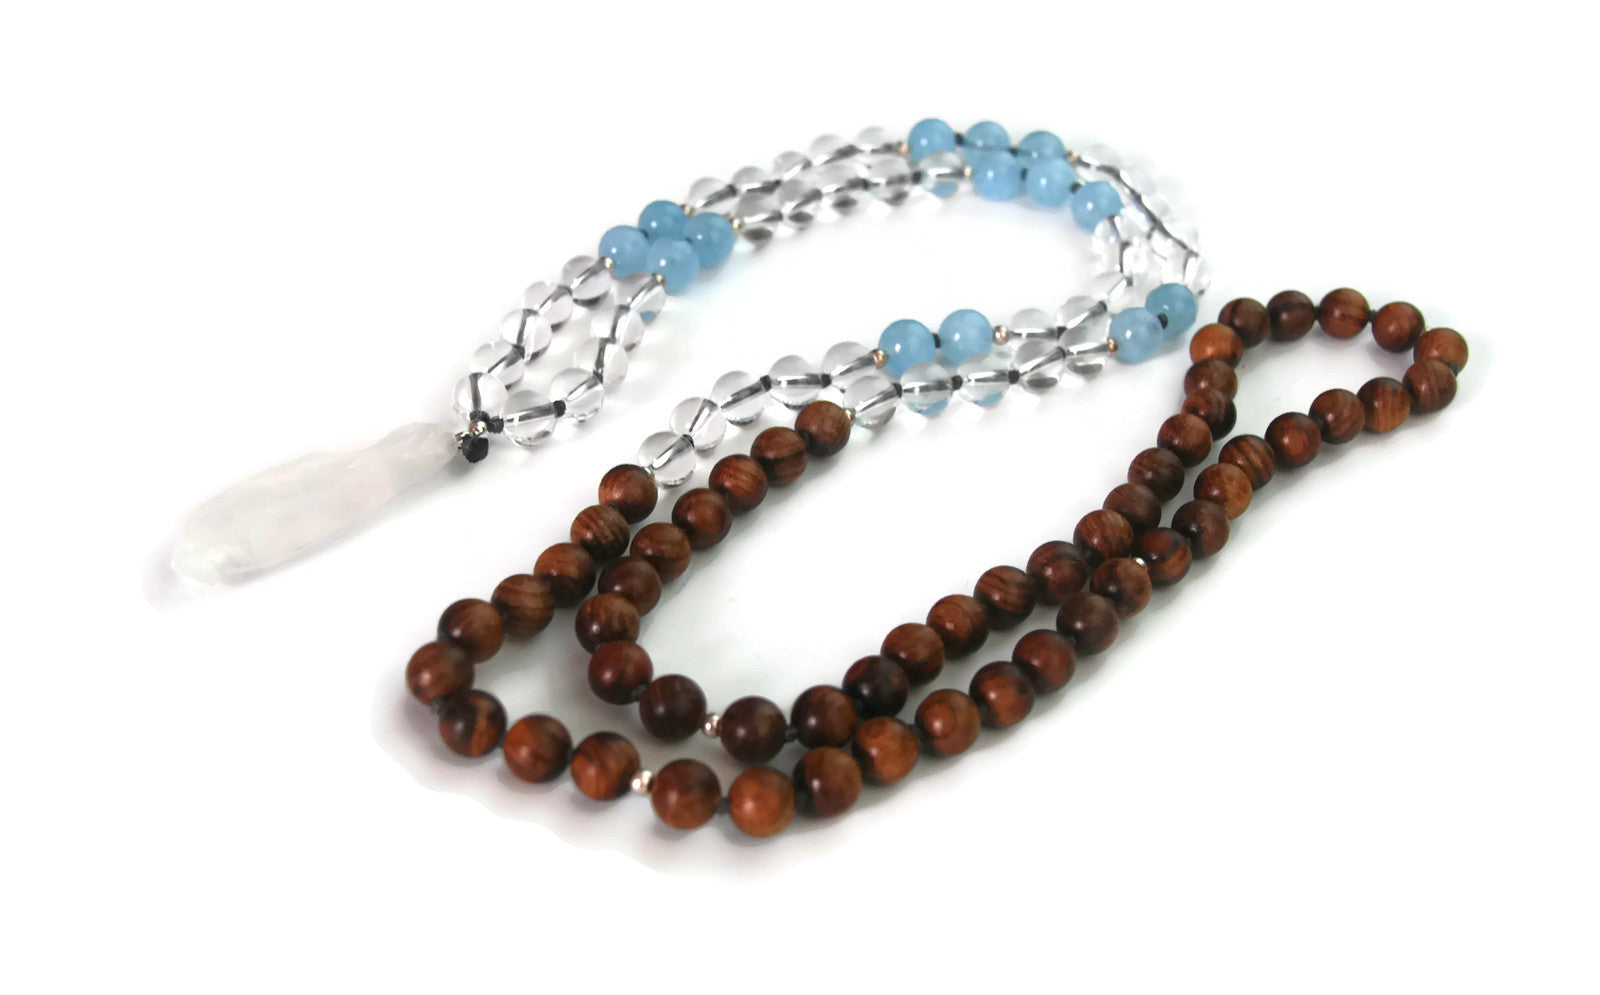 Ascension Line 8mm Pear Wood,  Aquamarine, Clear Crystal & Crystal Pendant Traditional Knotted 108 Bead Meditation Mala Necklace Throat Chakra